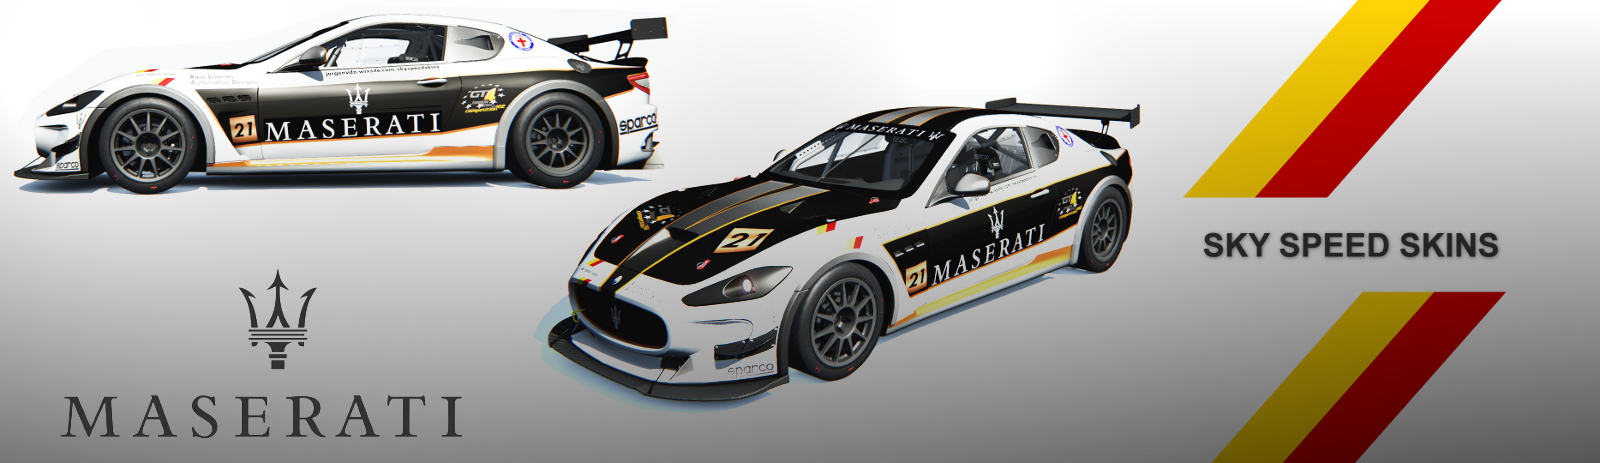 render_maserati_gt4_small.png